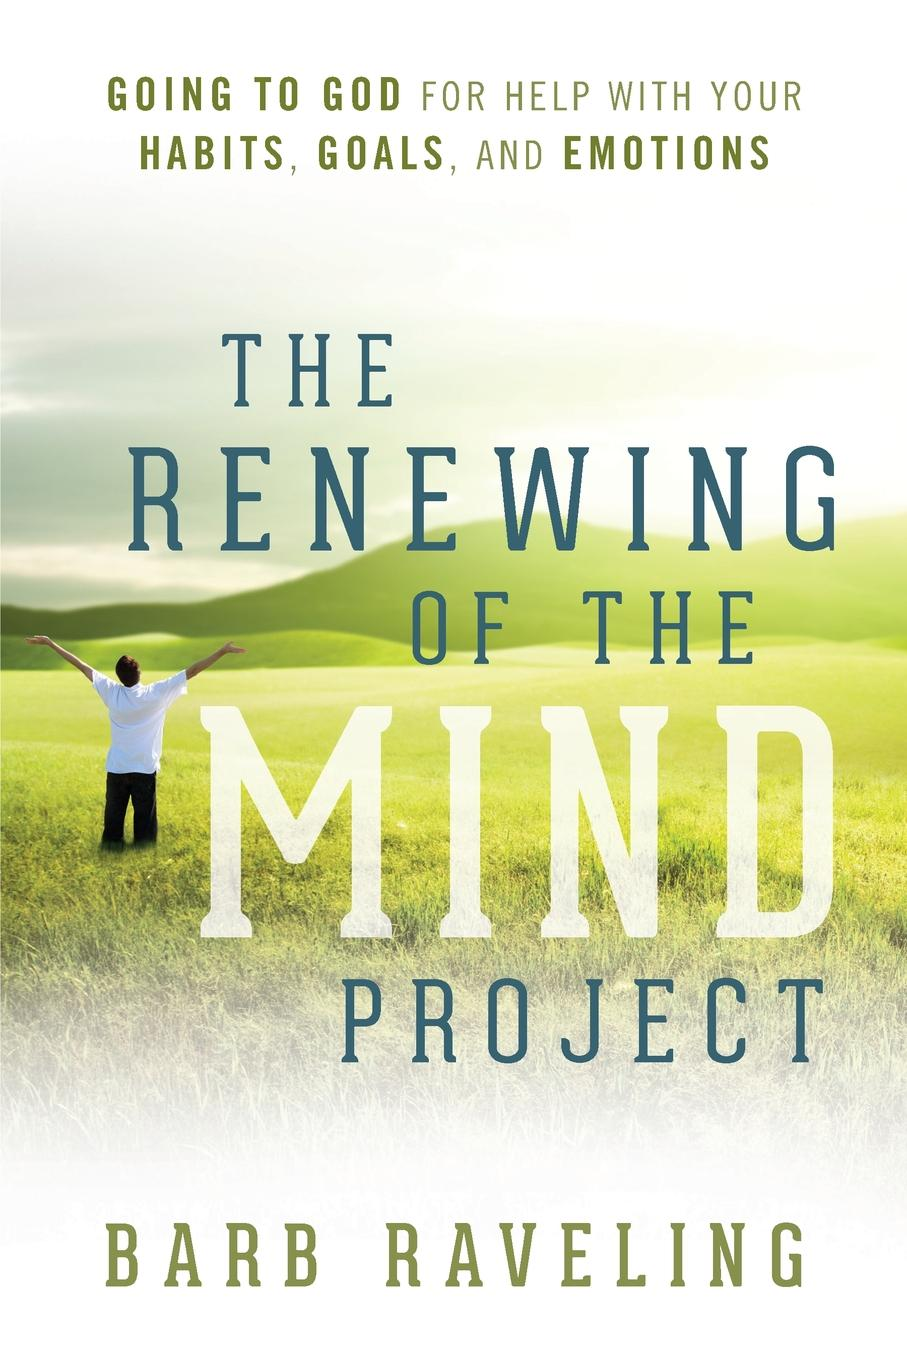 Barb Raveling The Renewing of the Mind Project. Going to God for Help with Your Habits, Goals, and Emotions change your mind change your life